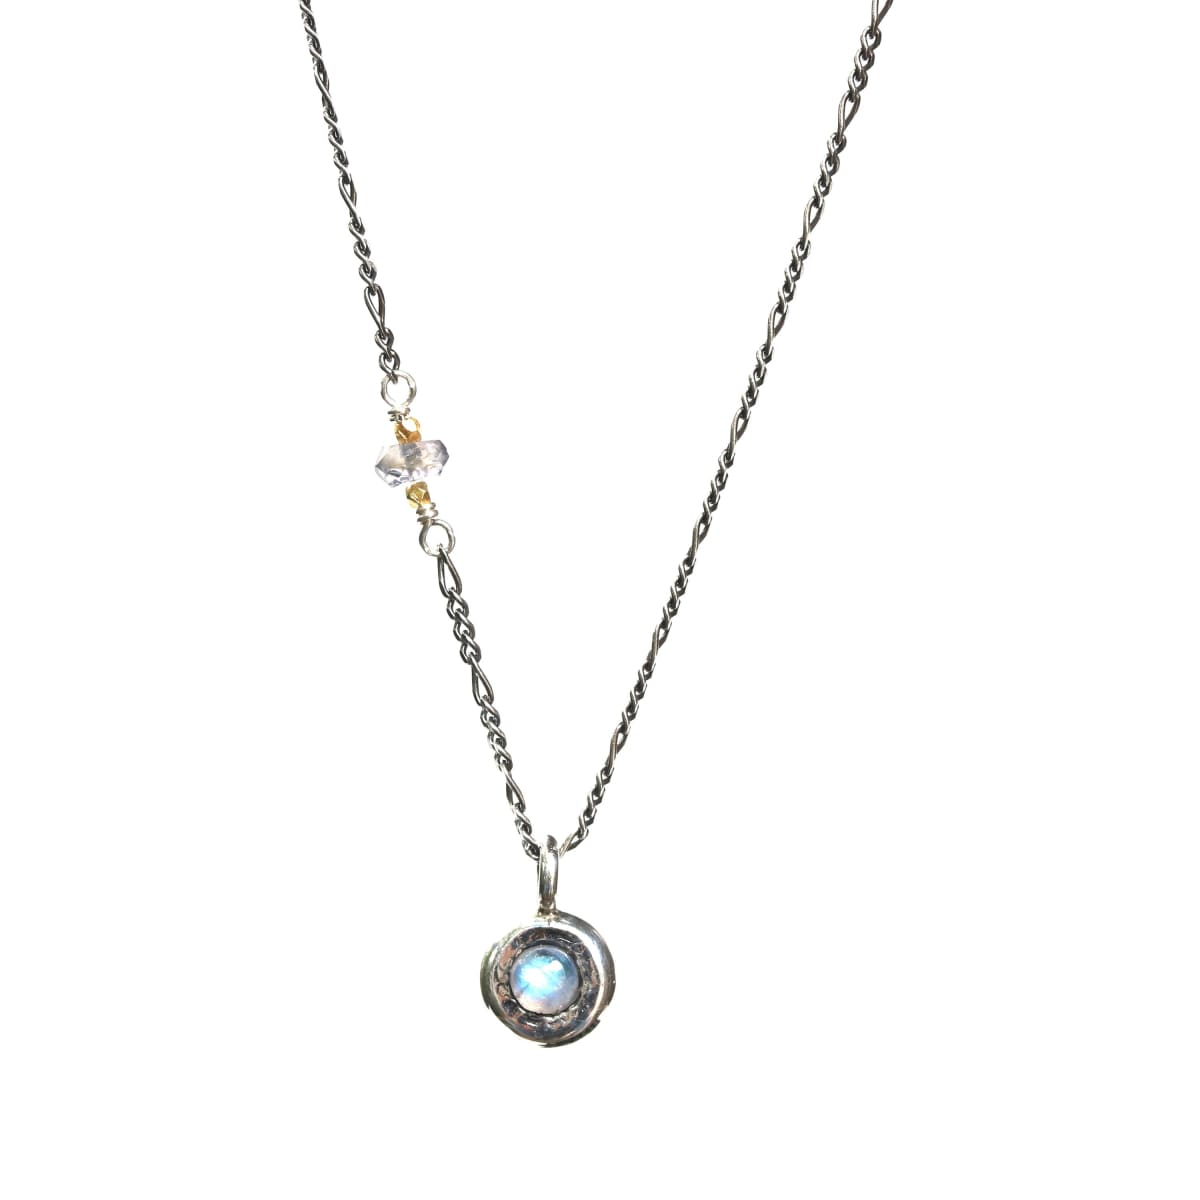 Tiny round cabochon Moonstone pendant necklace with iolite beads on the side - by Metal Studio Jewelry